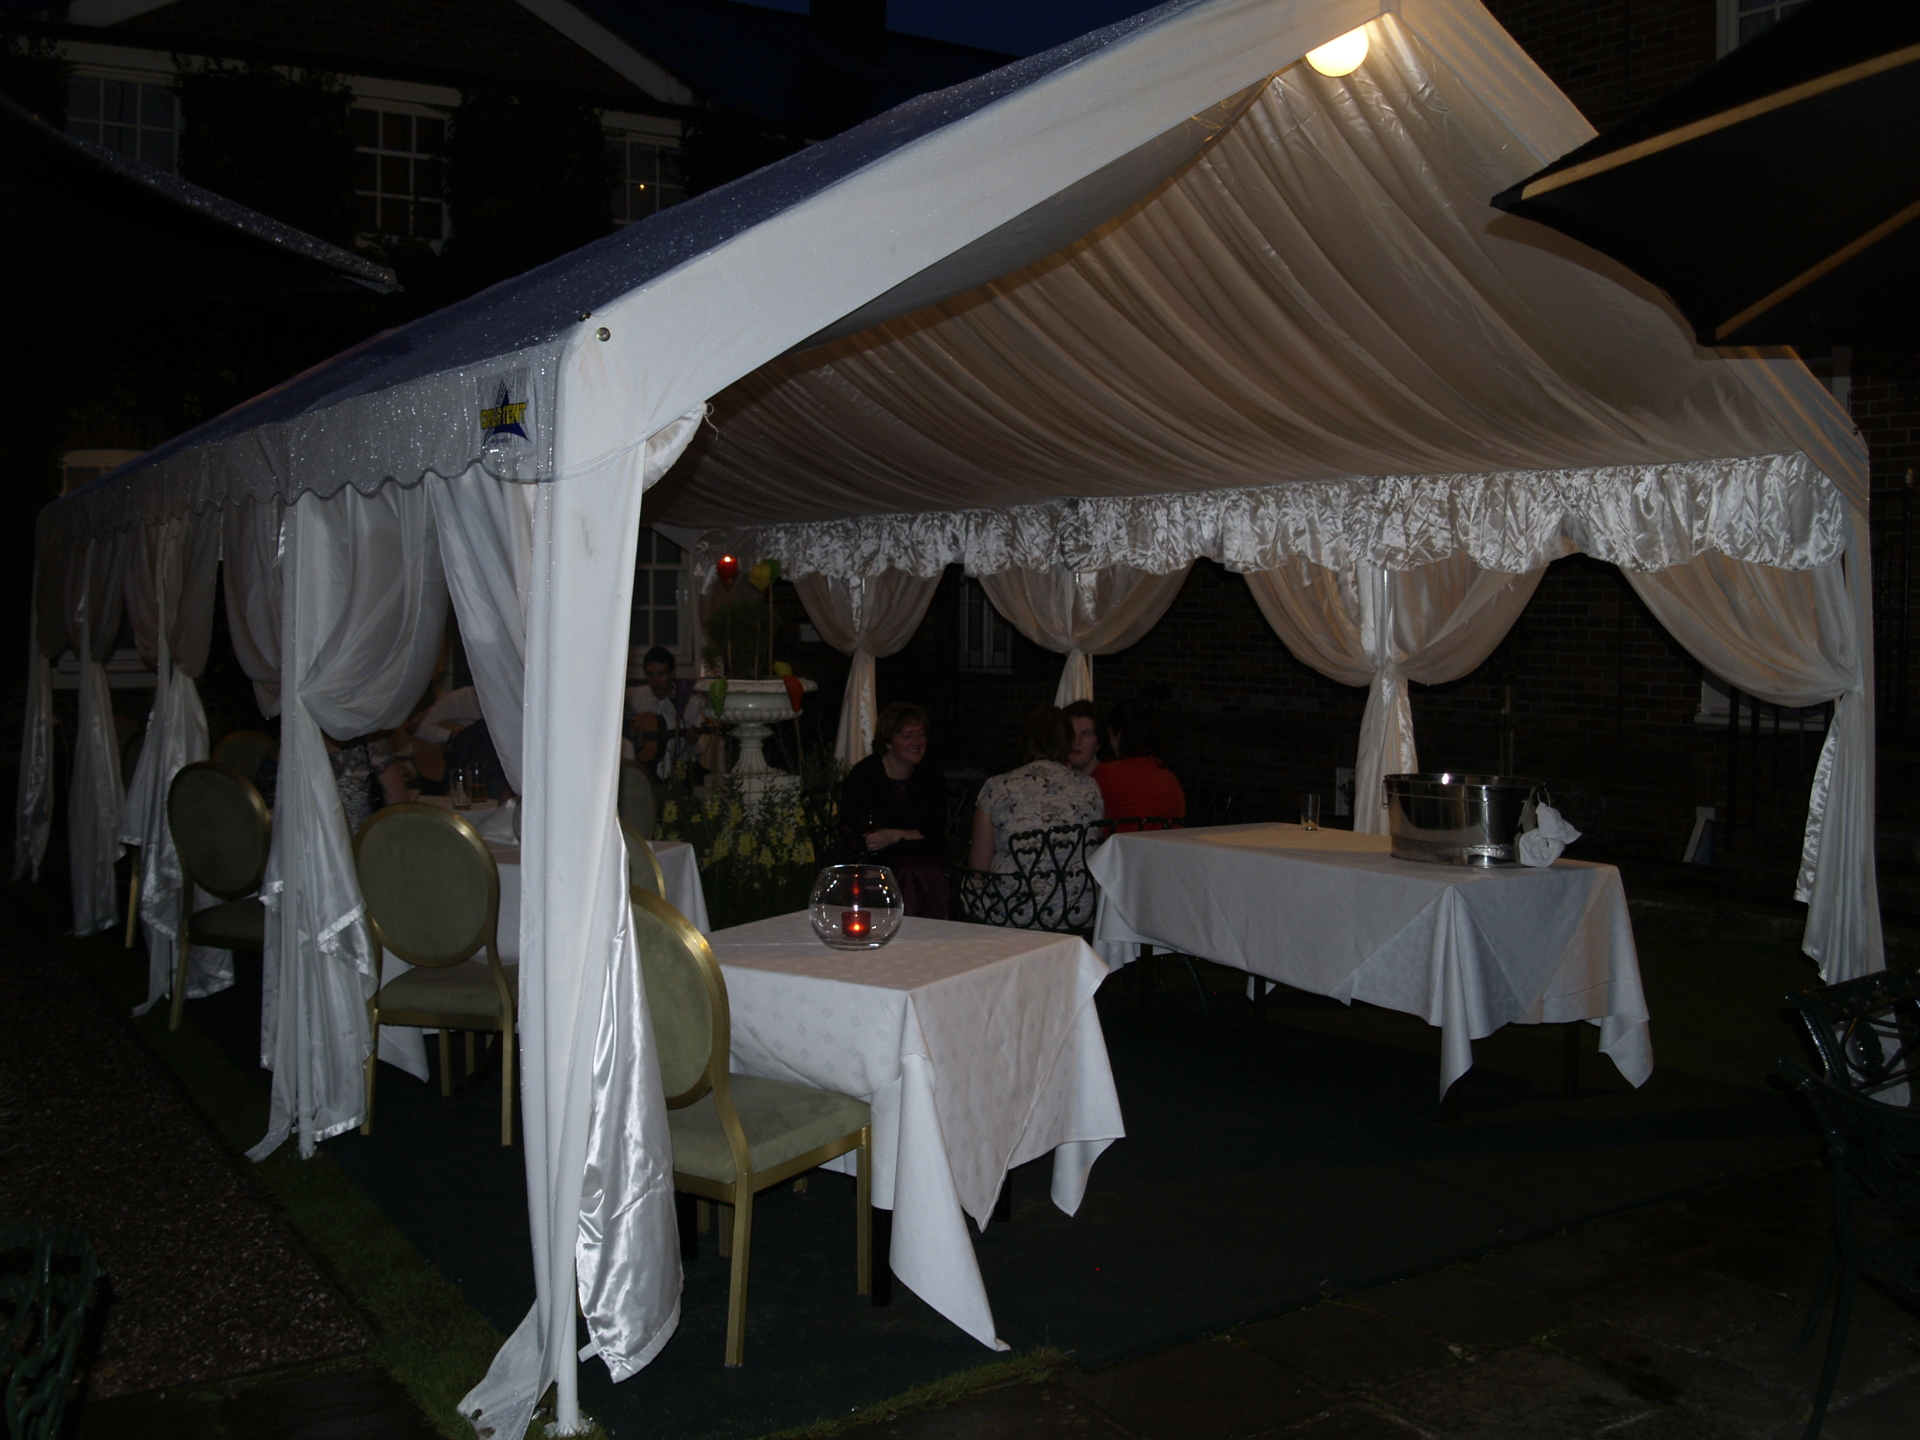 4m x 8m marquee with interior lining